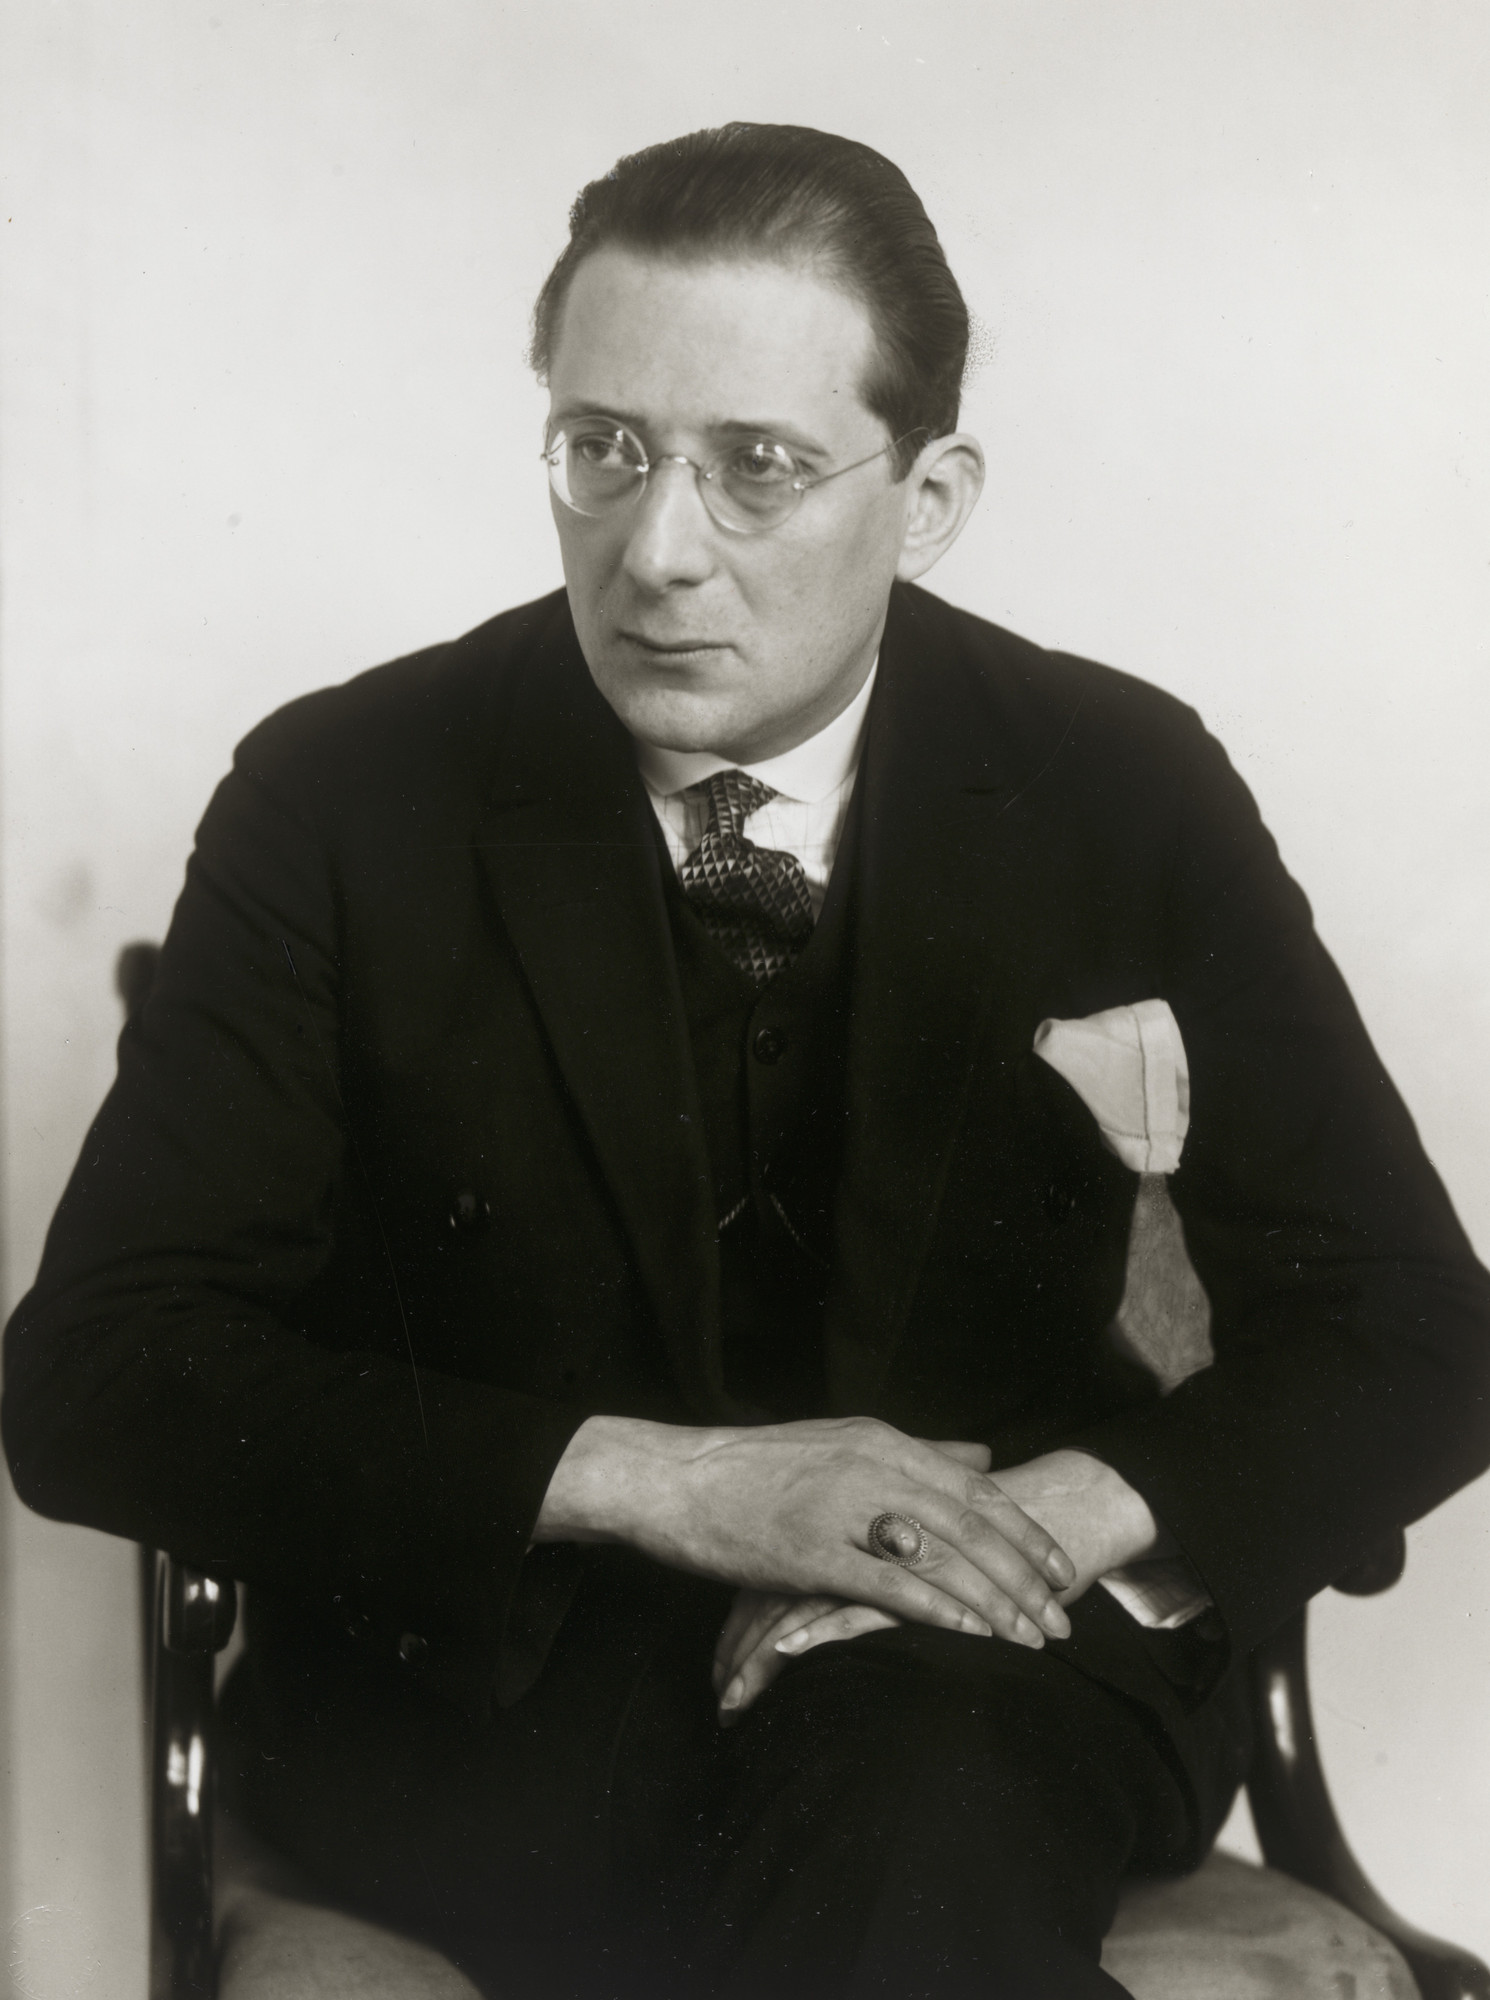 August Sander. Writer and Theater Critic [Franz Paul Brückner]. c. 1926